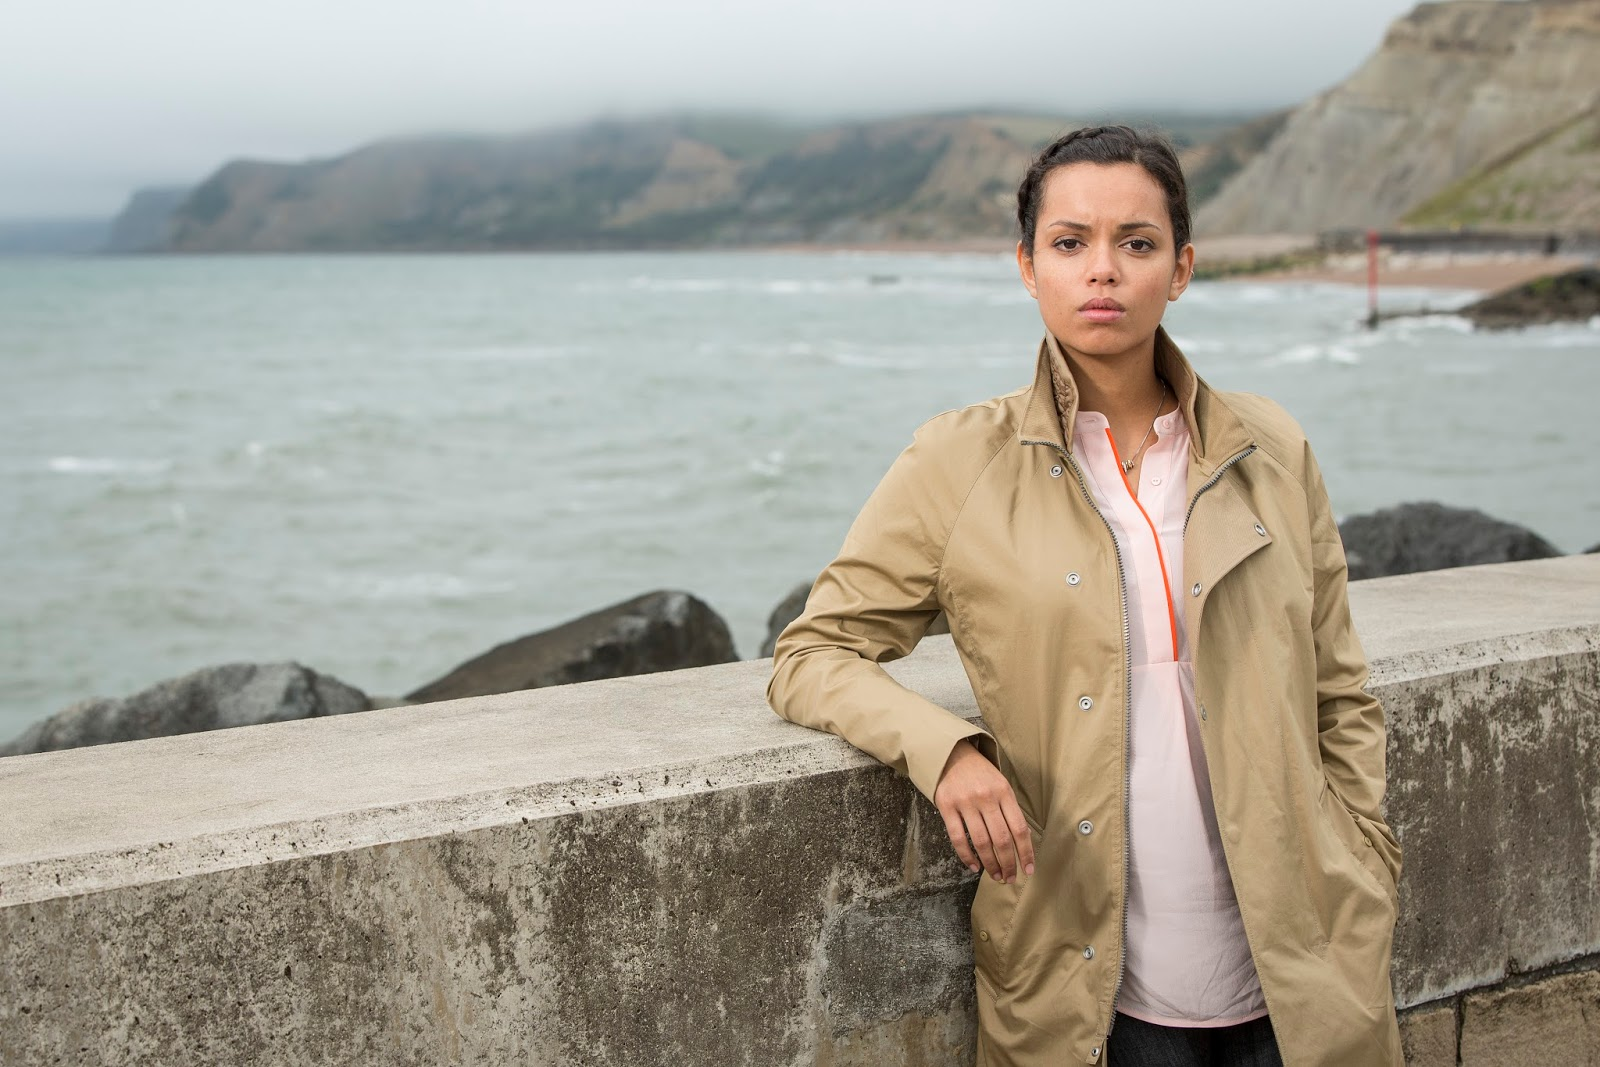 new interview meet the new girl in town georgina campbell joins new interview meet the new girl in town georgina campbell joins broadchurch as new police officer